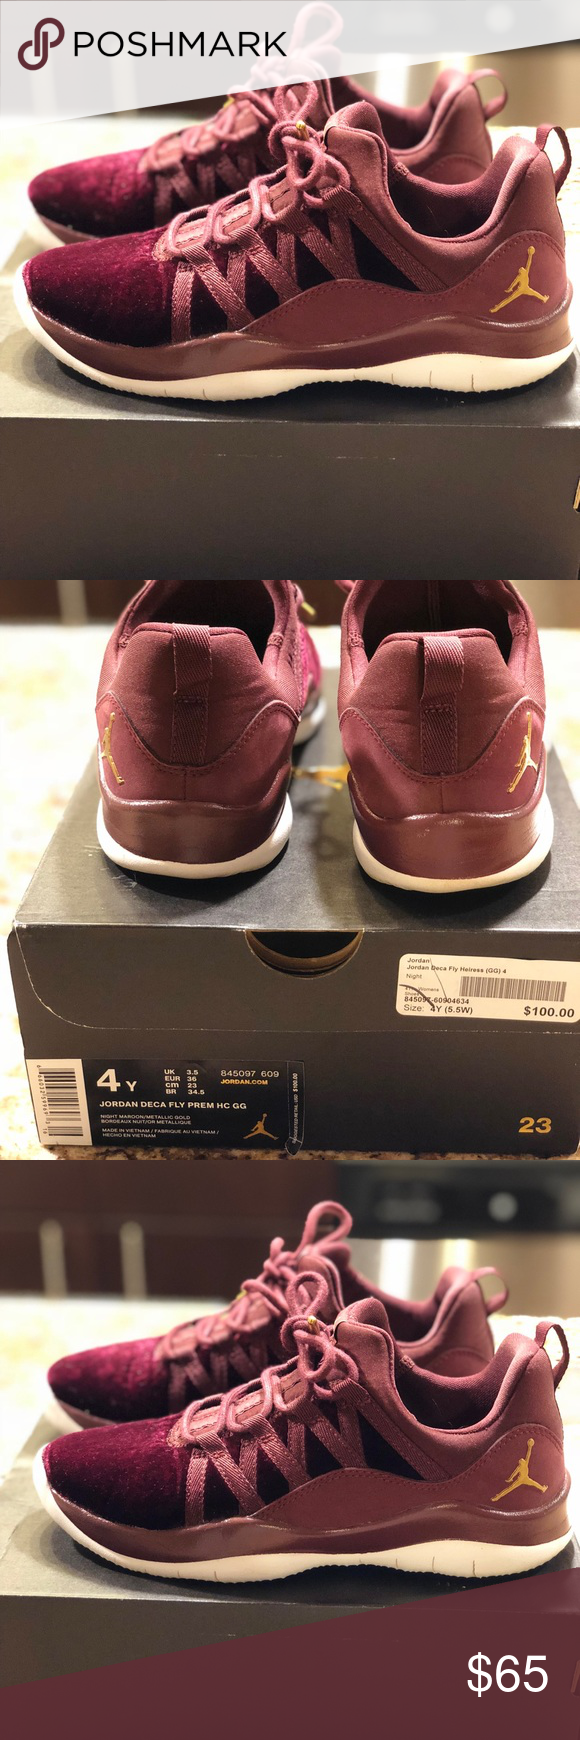 9ccc3ff505263 Jordan Deca Fly Prem HC GG Night maroon Metallic Gold Jordan Deca Fly  Heiress Sneaker Jordan Shoes Sneakers